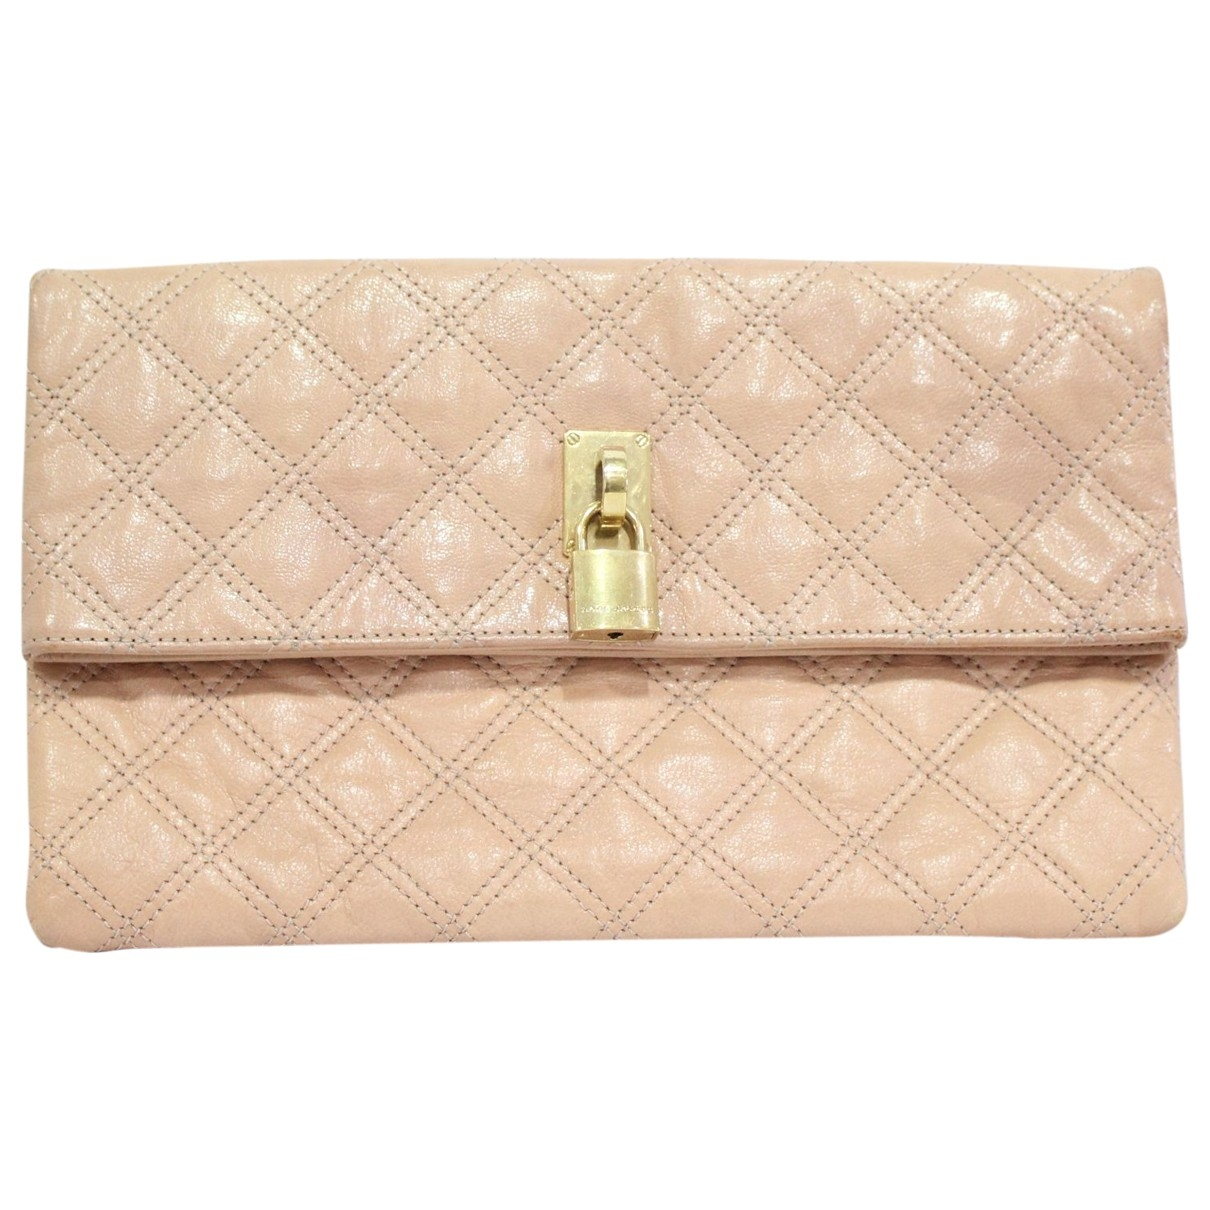 Marc Jacobs \N Pink Leather Clutch bag for Women \N